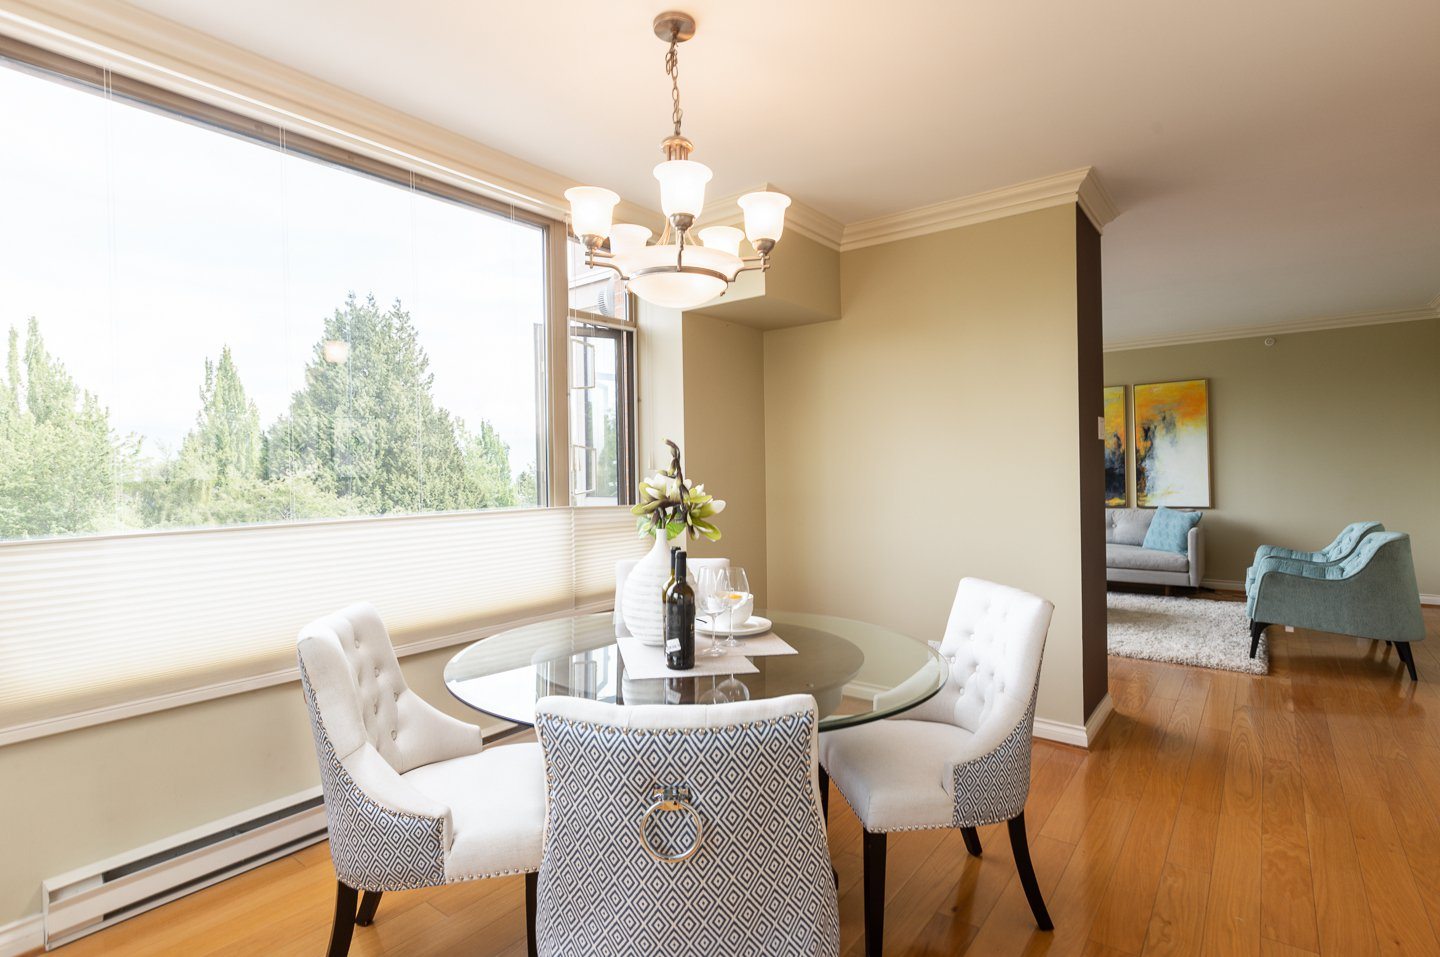 Photo 3: Photos: 401-2580 TOLMIE ST in VANCOUVER: Point Grey Condo for sale (Vancouver West)  : MLS®# R2397003